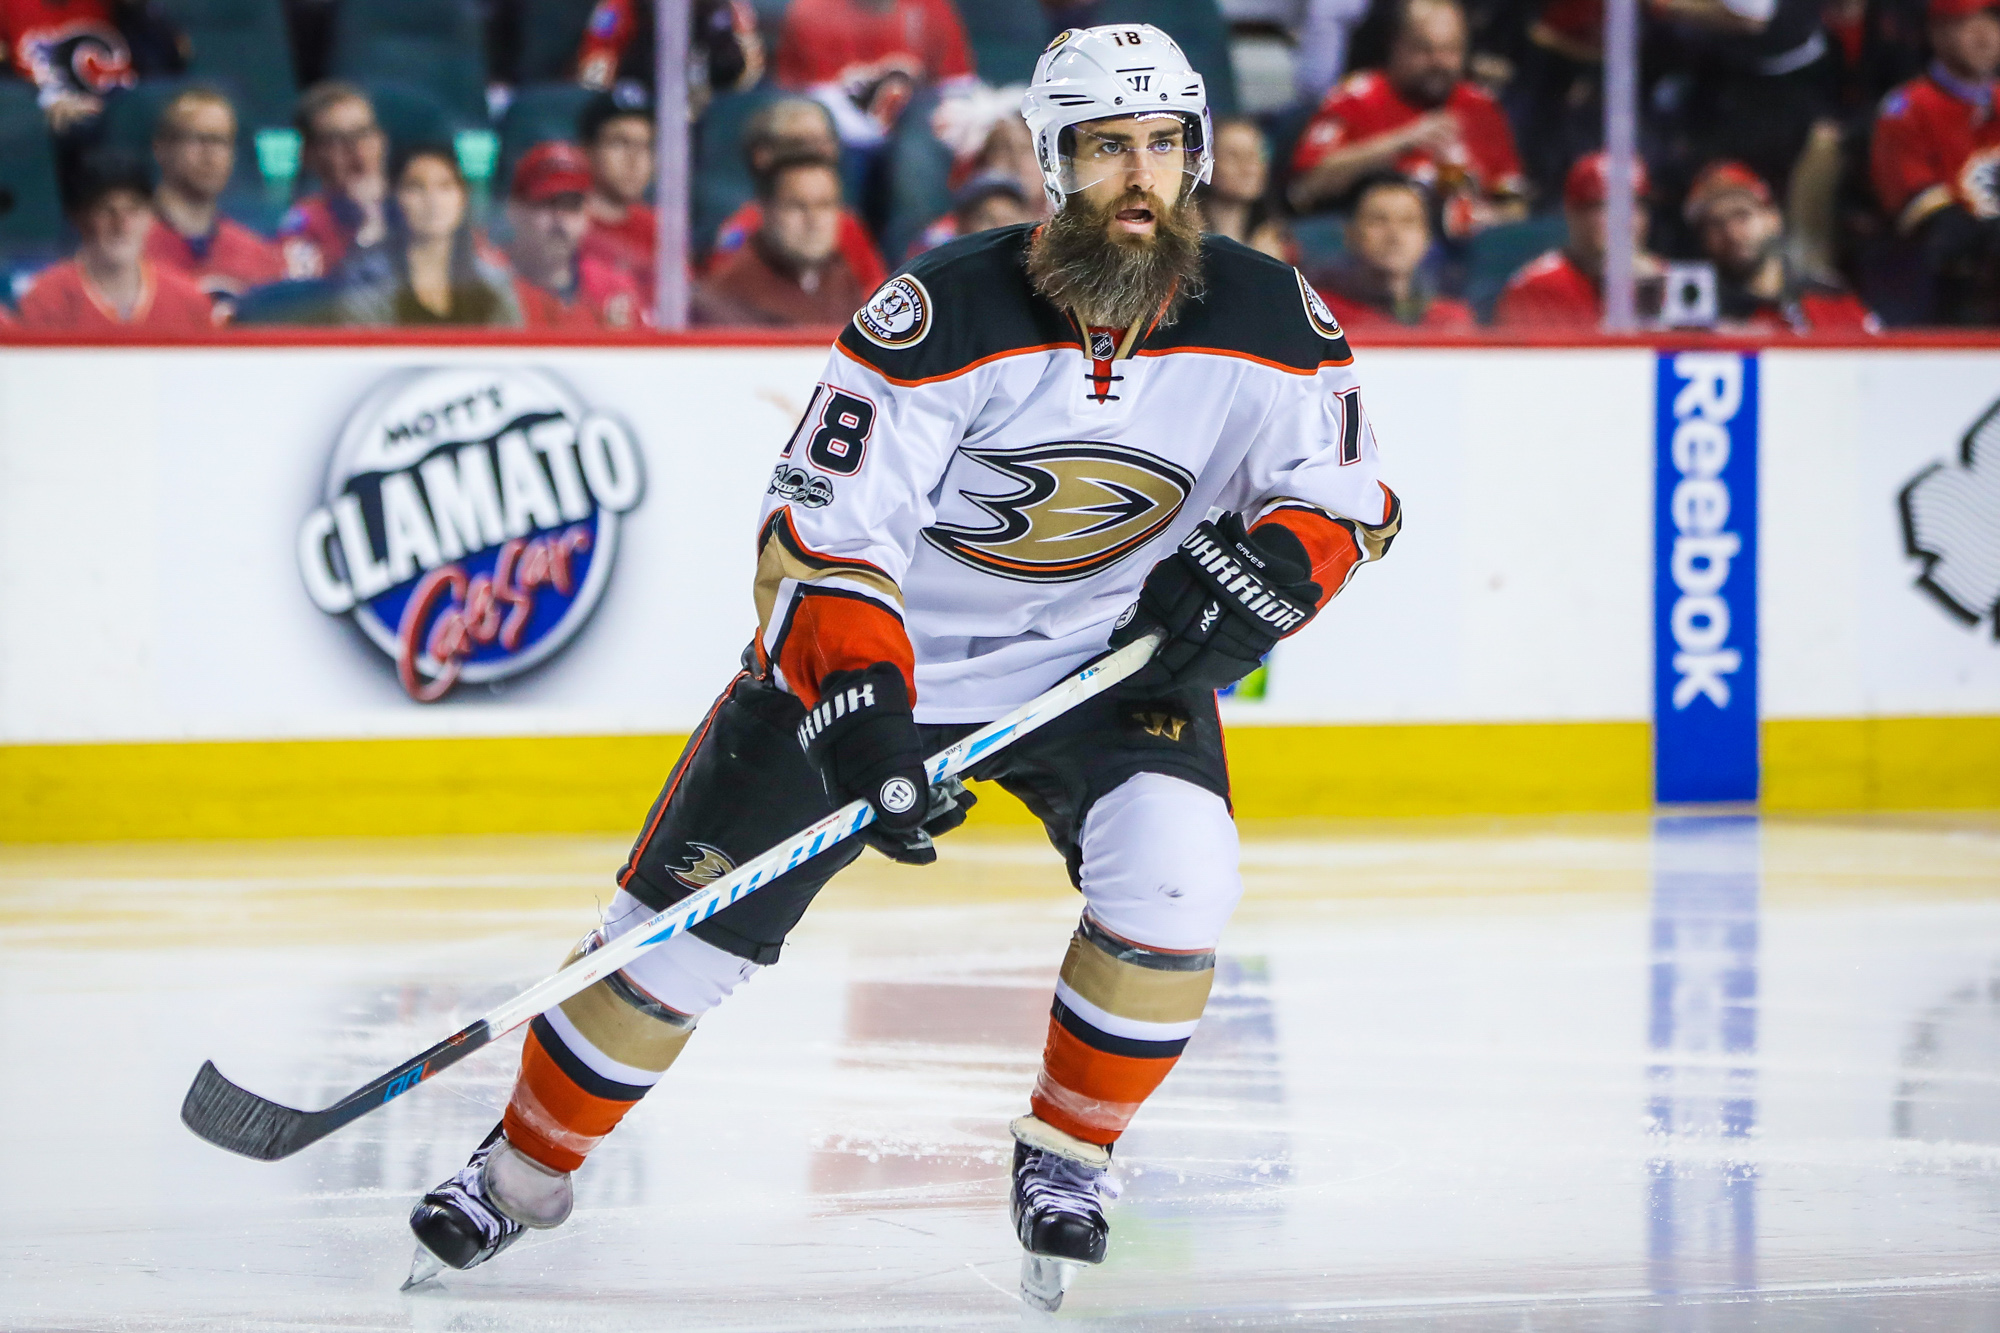 10021768-nhl-stanley-cup-playoffs-anaheim-ducks-at-calgary-flames-1